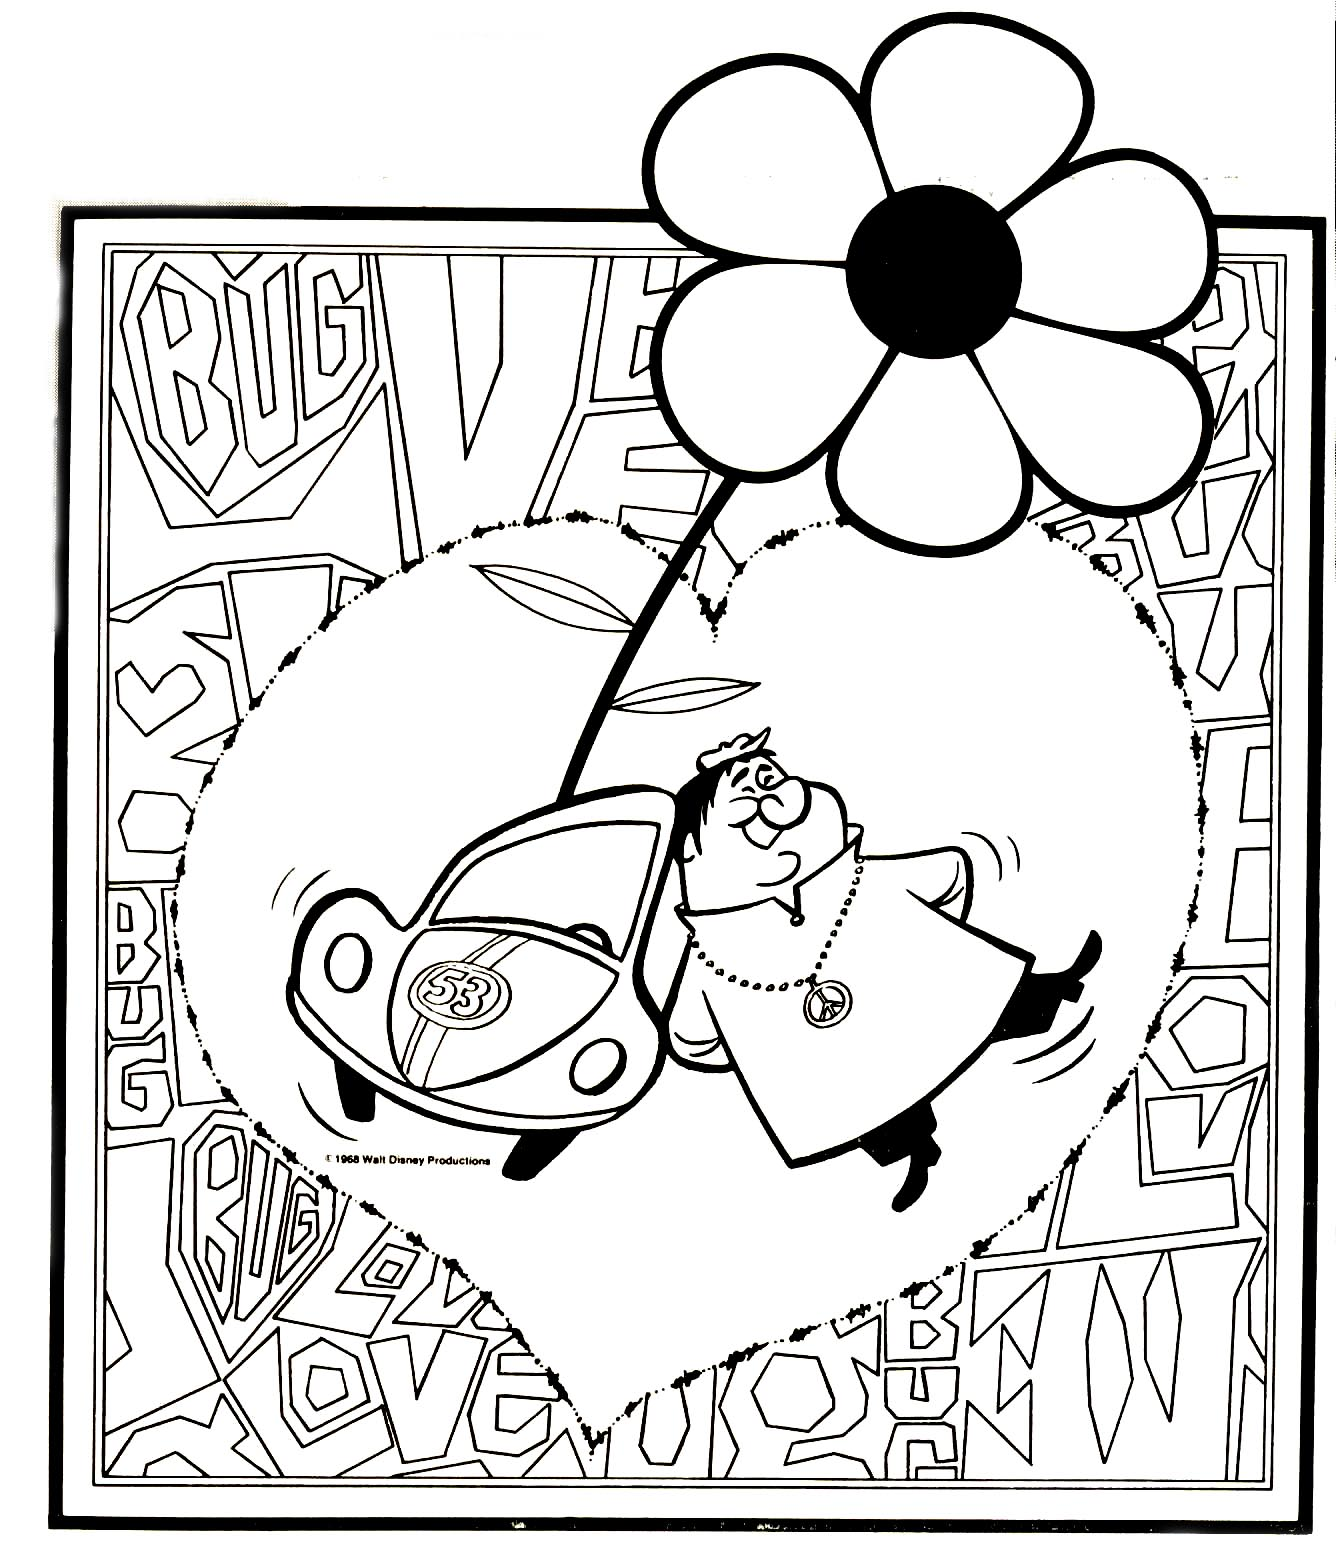 Coloring Pages Herbie Coloring Pages welcome to herbies kids page thank you for visiting if youd like a personalized autograph from herbie the one above please send an e mail with your